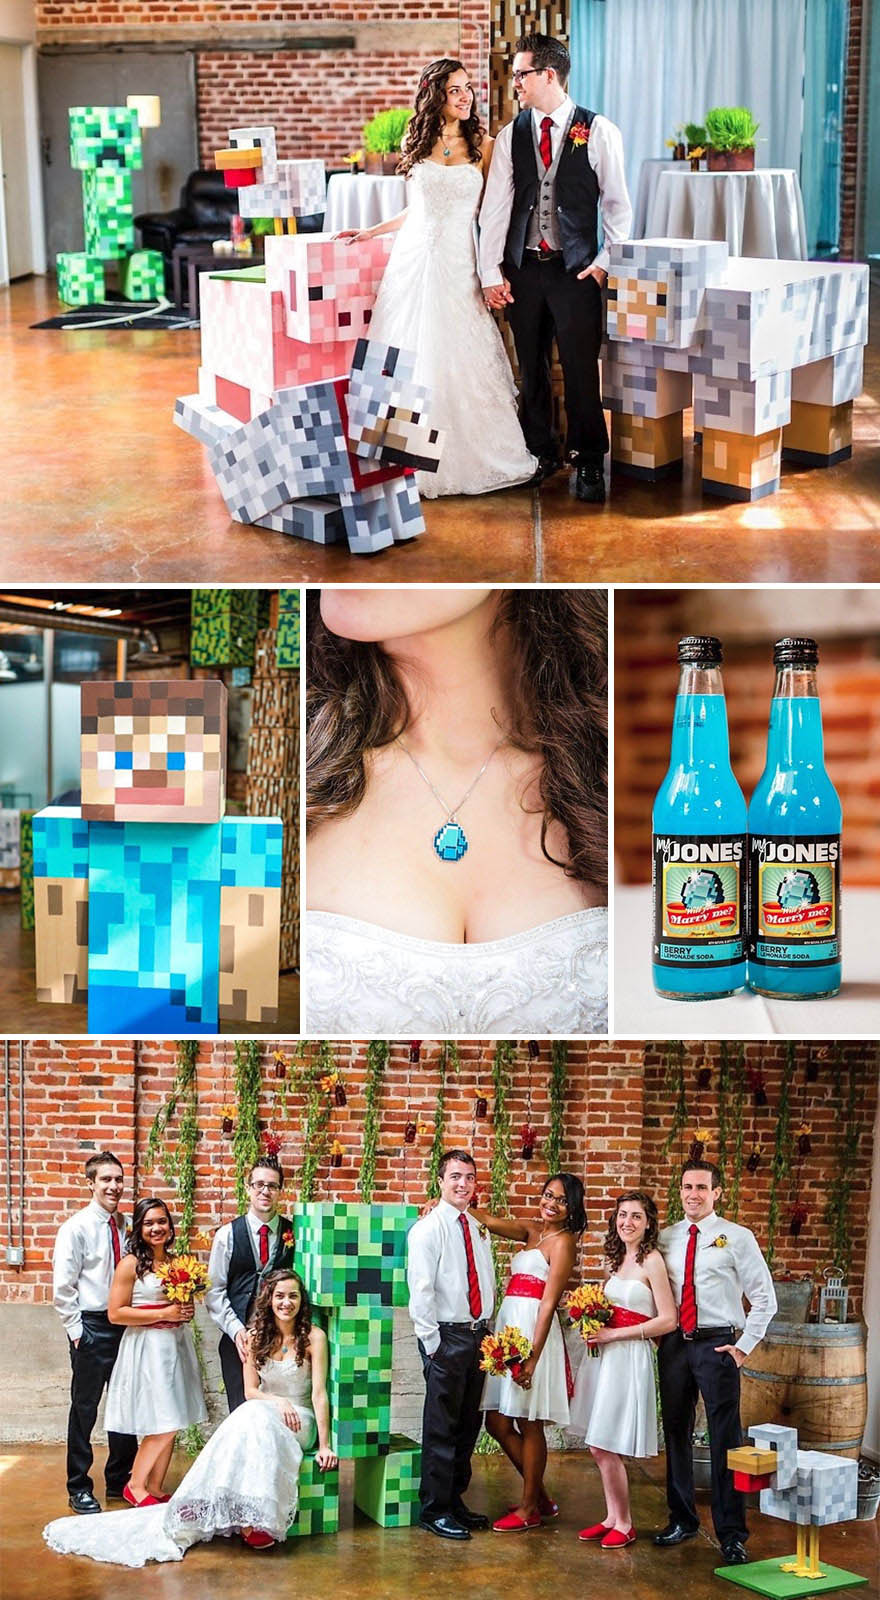 geeky-themed-wedding-vinegret (11)